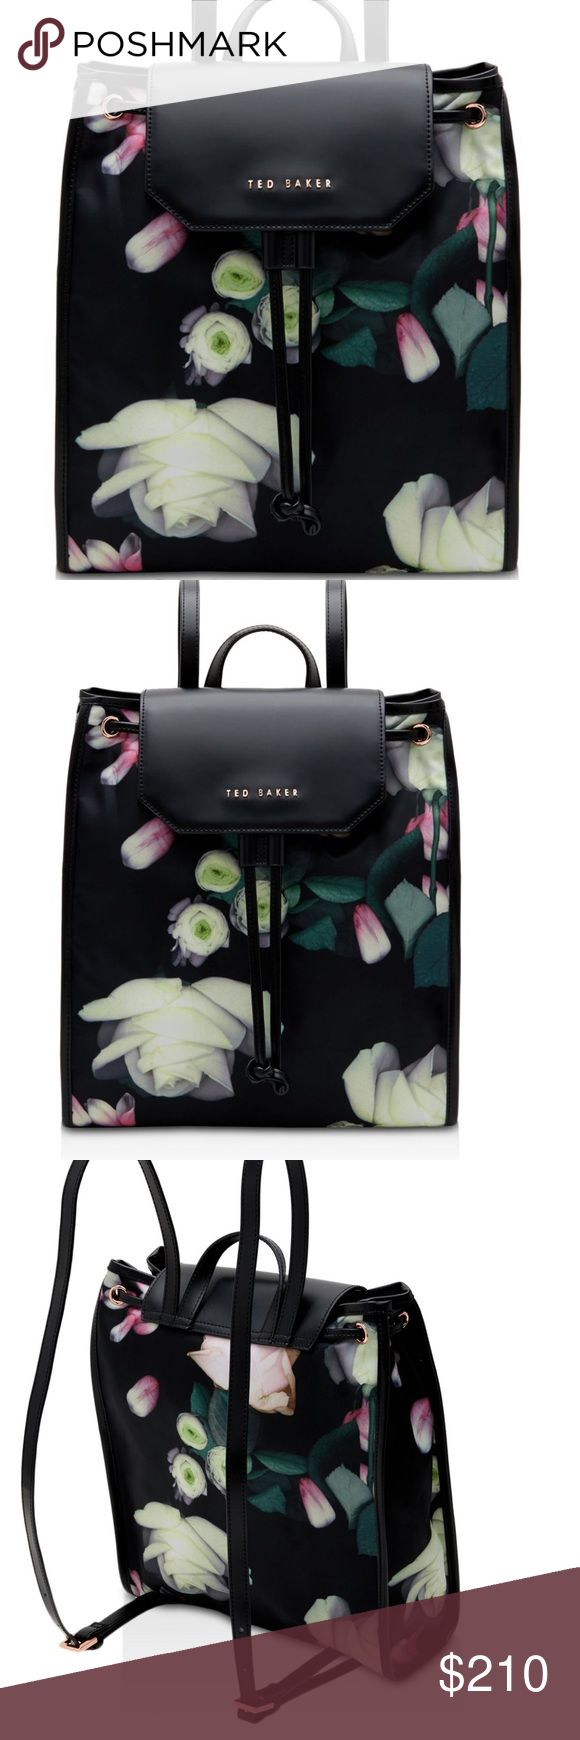 Ted Baker floral print backpack This rimless Ted Baker backpack is the perfect choice for any season. Black with floral print nylon and leather. Roomy enough to vary that tablet from r school, work or shopping. 100% Authentic new with tag. Ted Baker Bags Backpacks